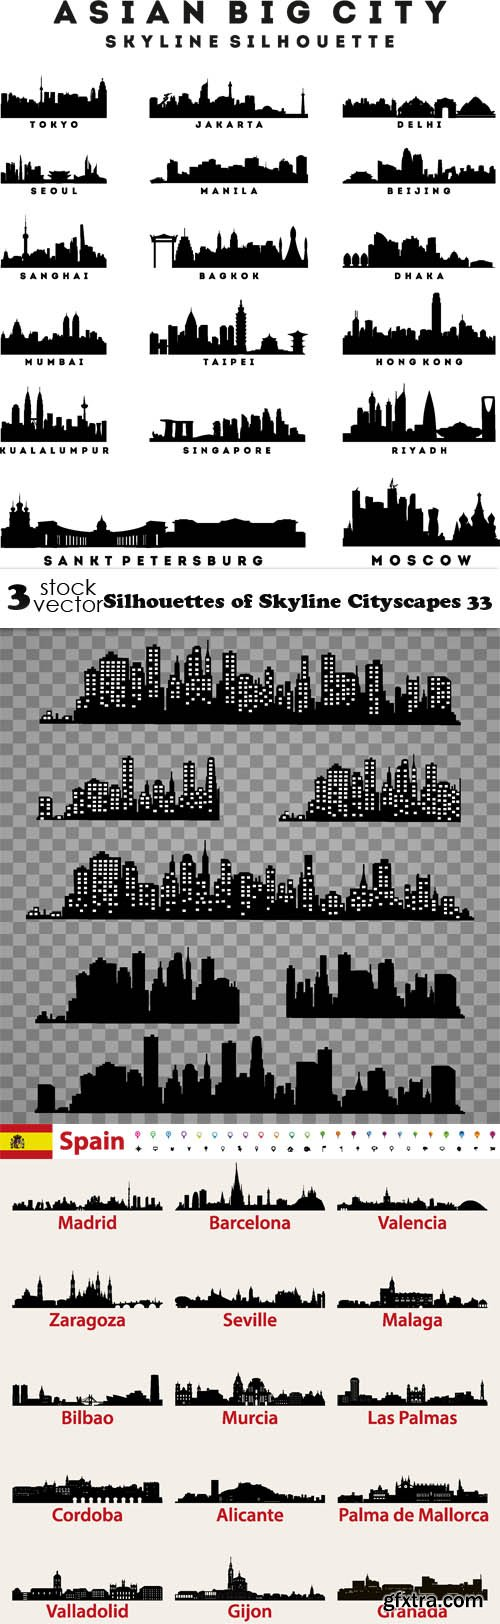 Vectors - Silhouettes of Skyline Cityscapes 33